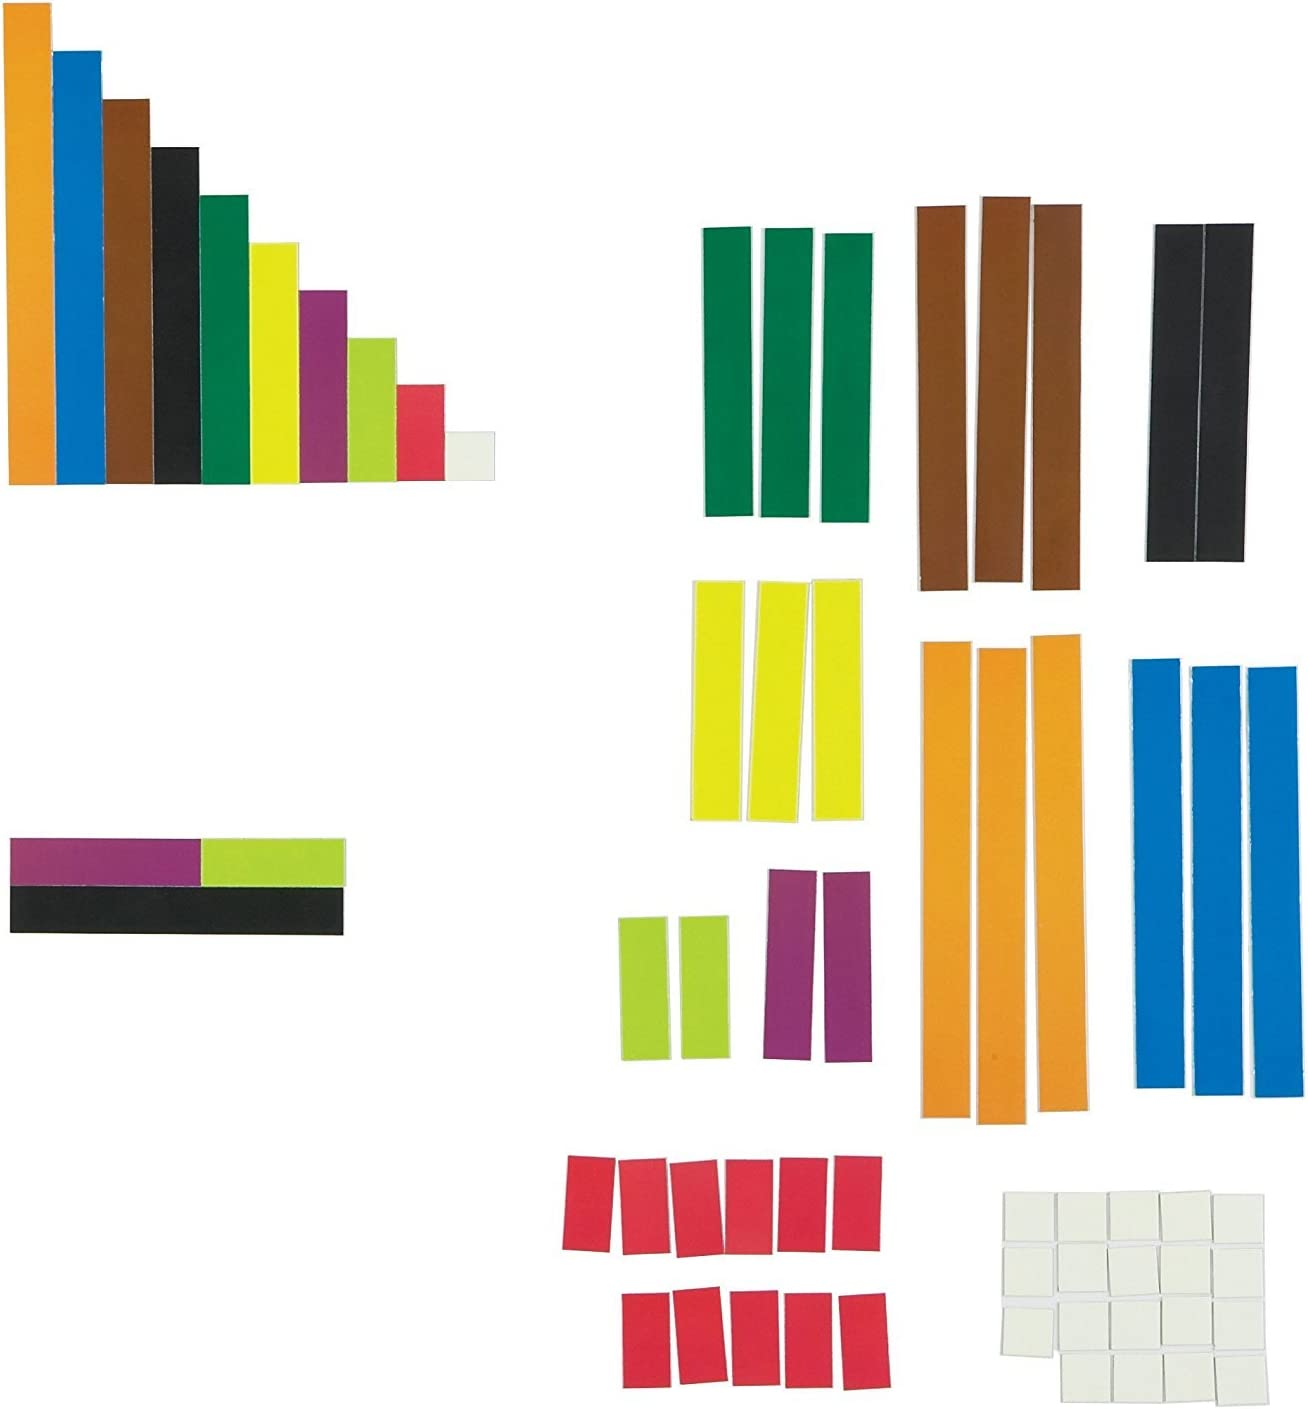 cuisenaire rods math manipulative for high school